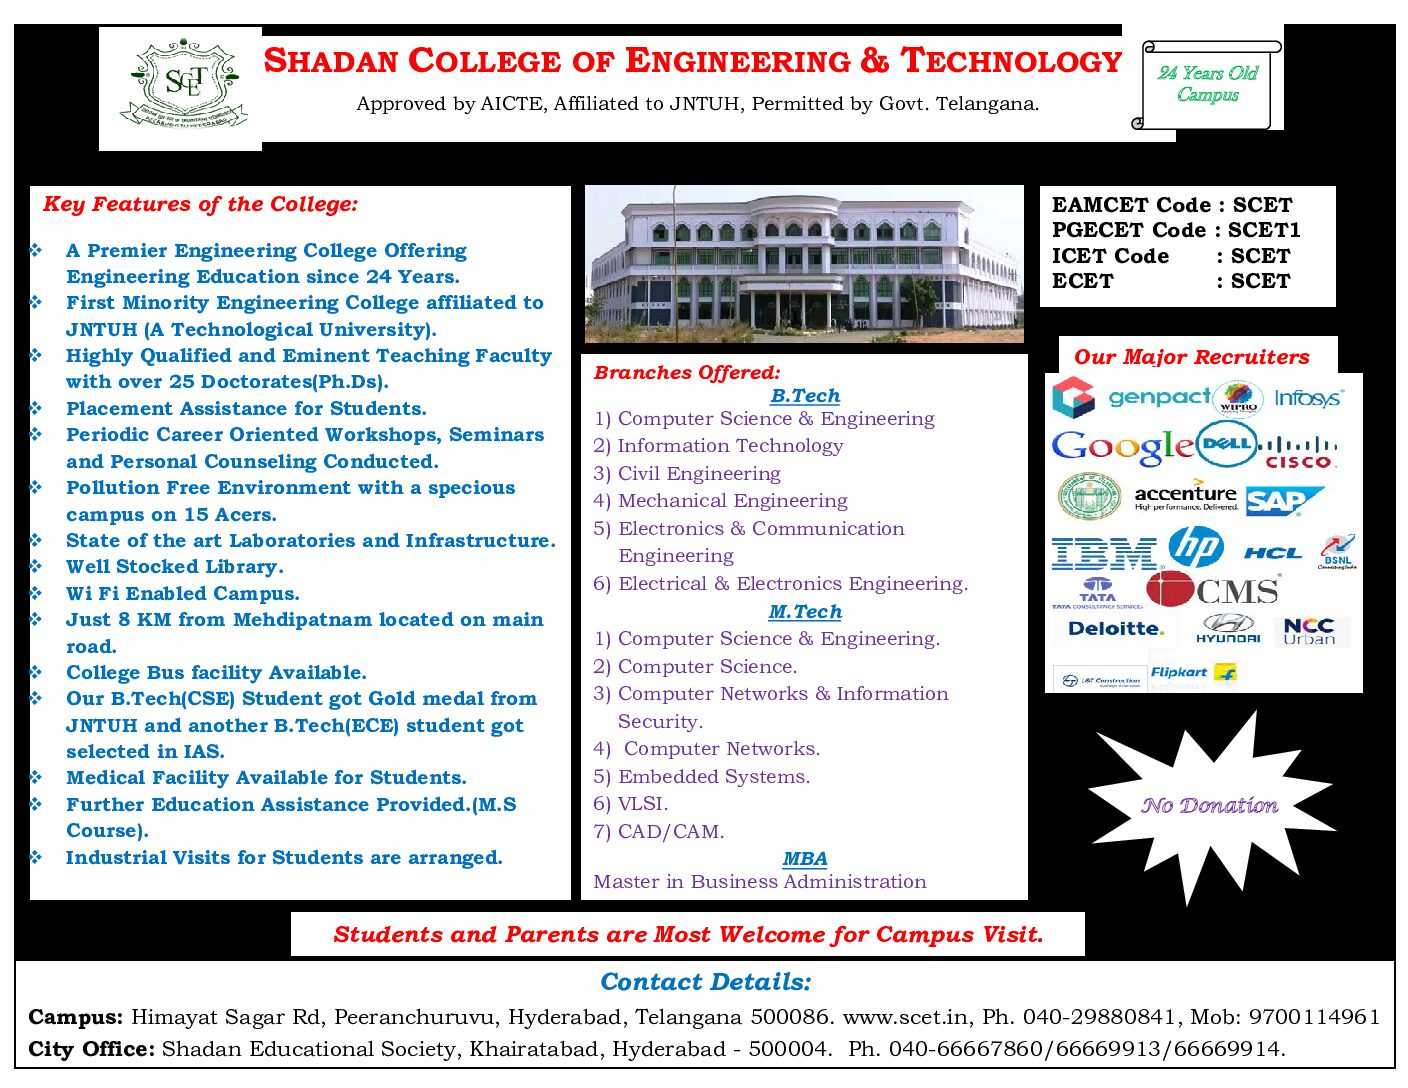 Admissions are in Progress. For Details Click here